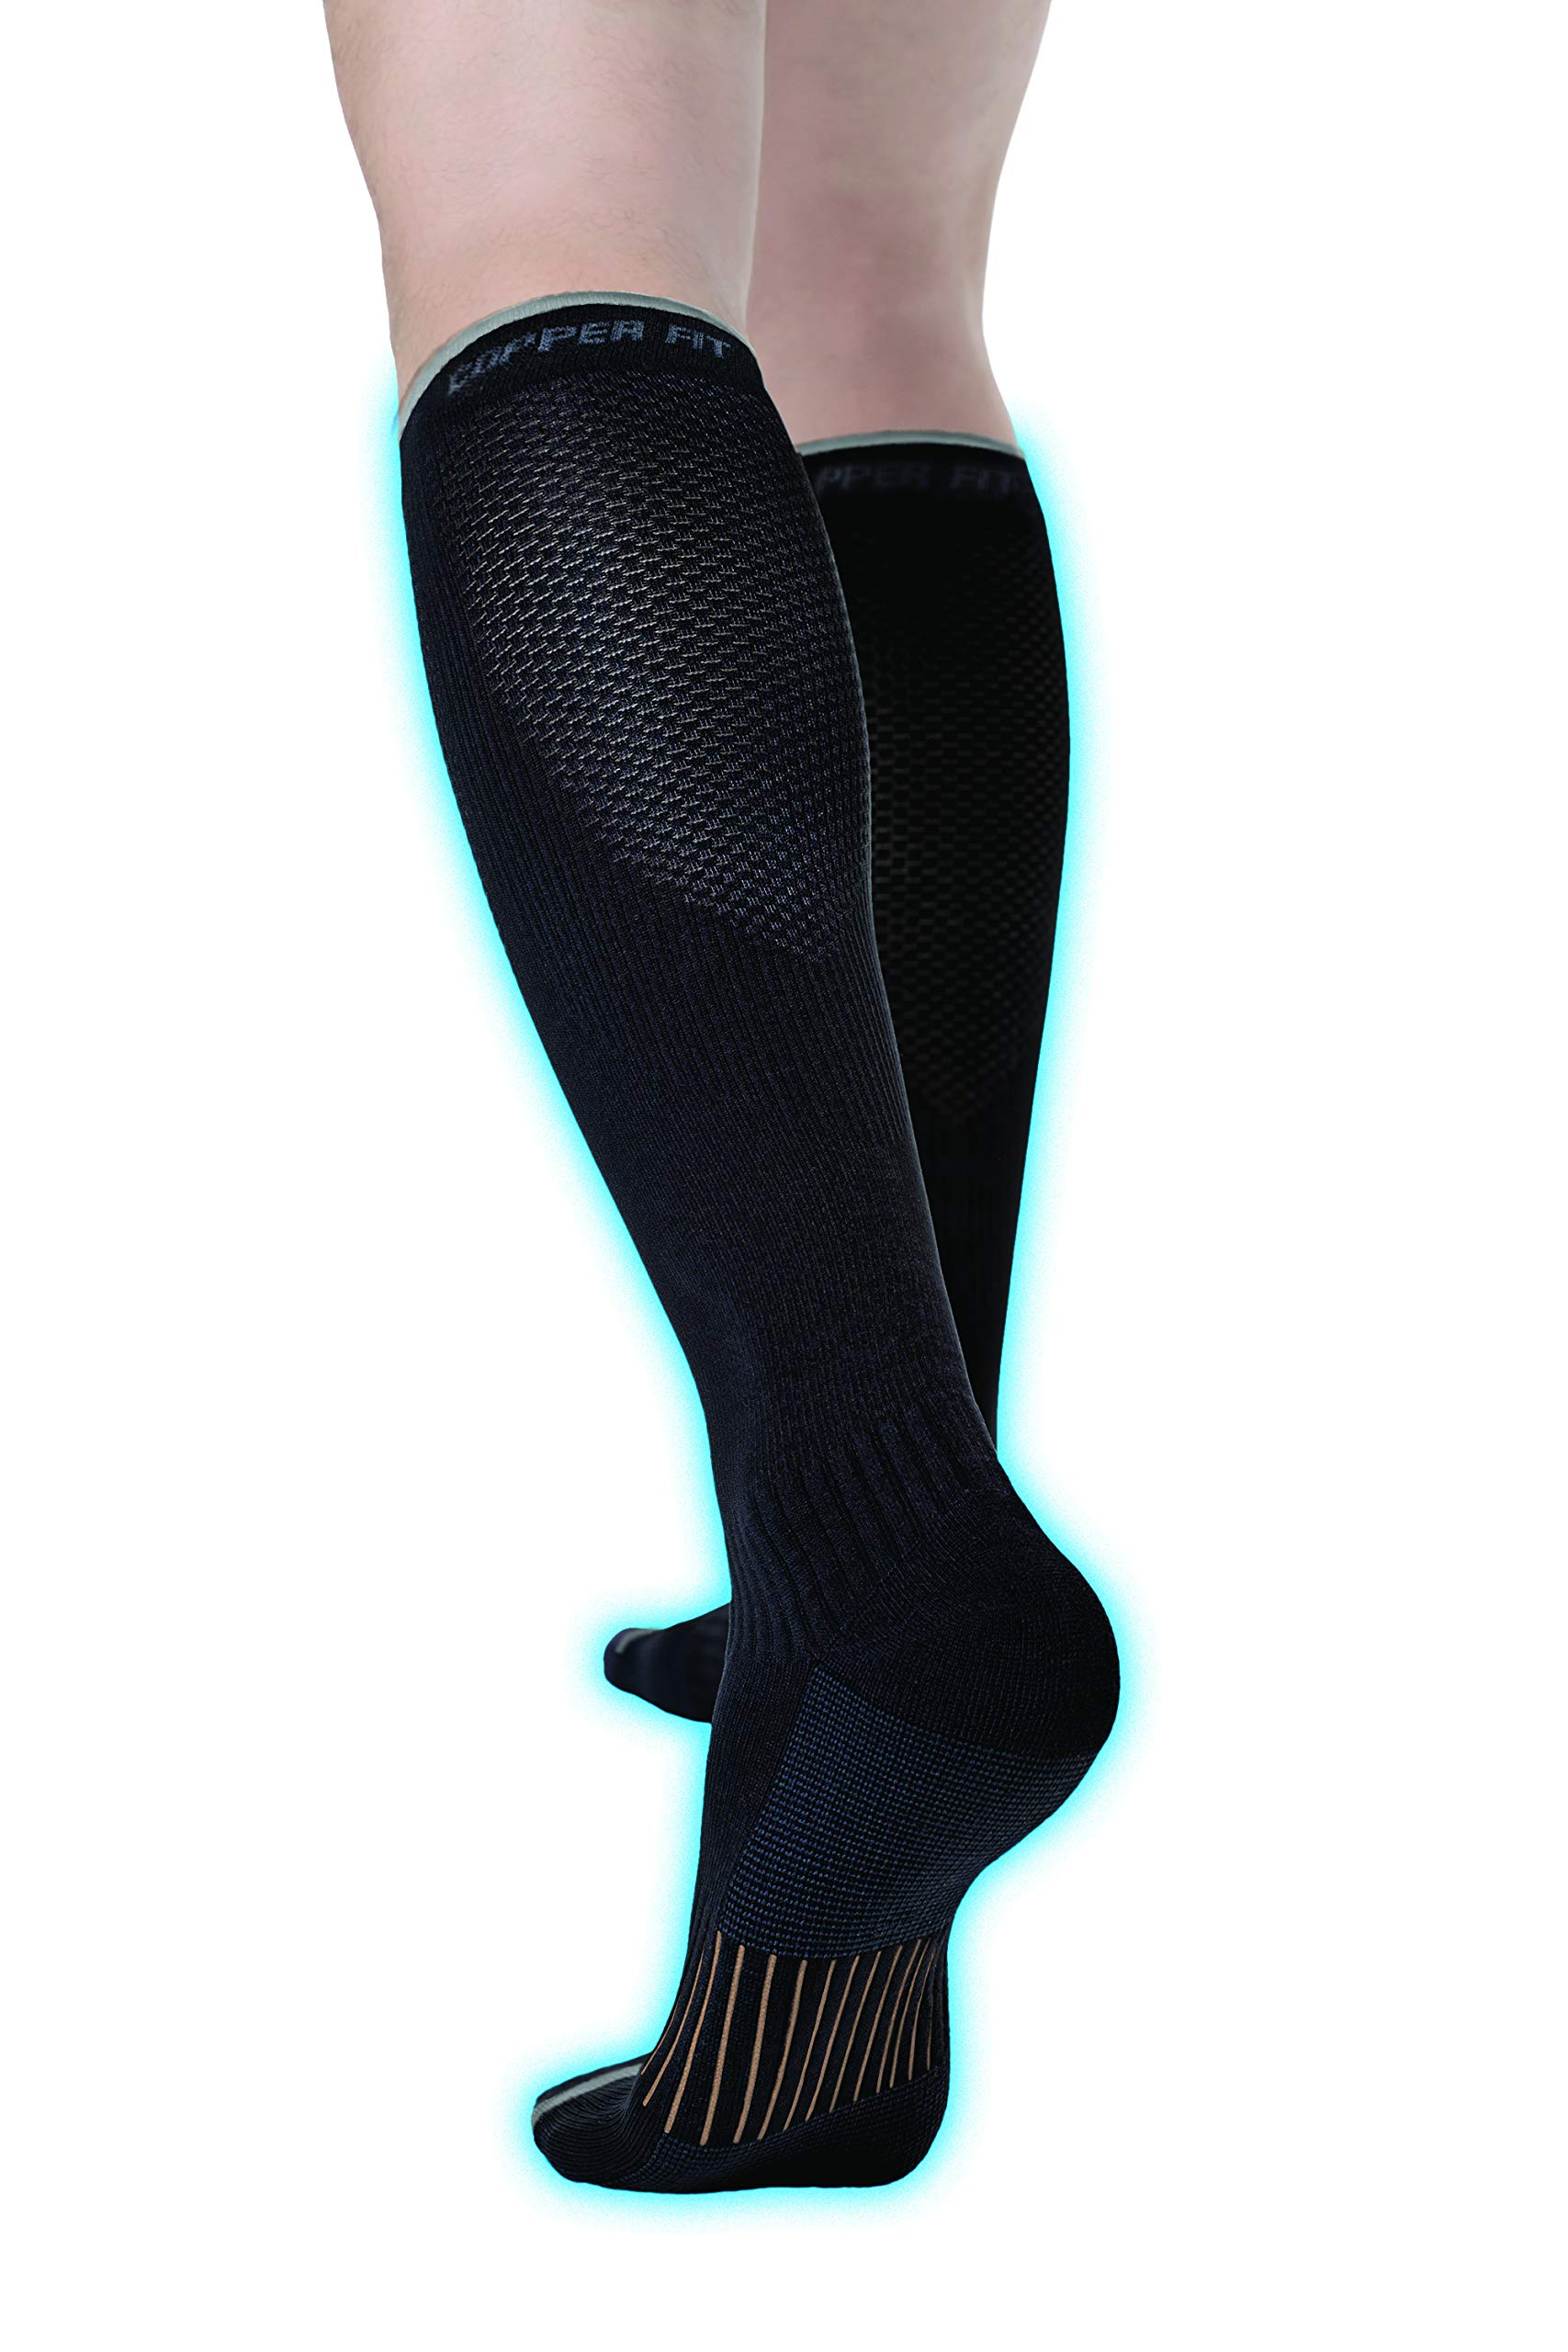 4d8859bdf Copper Fit Unisex 2.0 Easy-On and Easy-Off Knee High Compression Socks